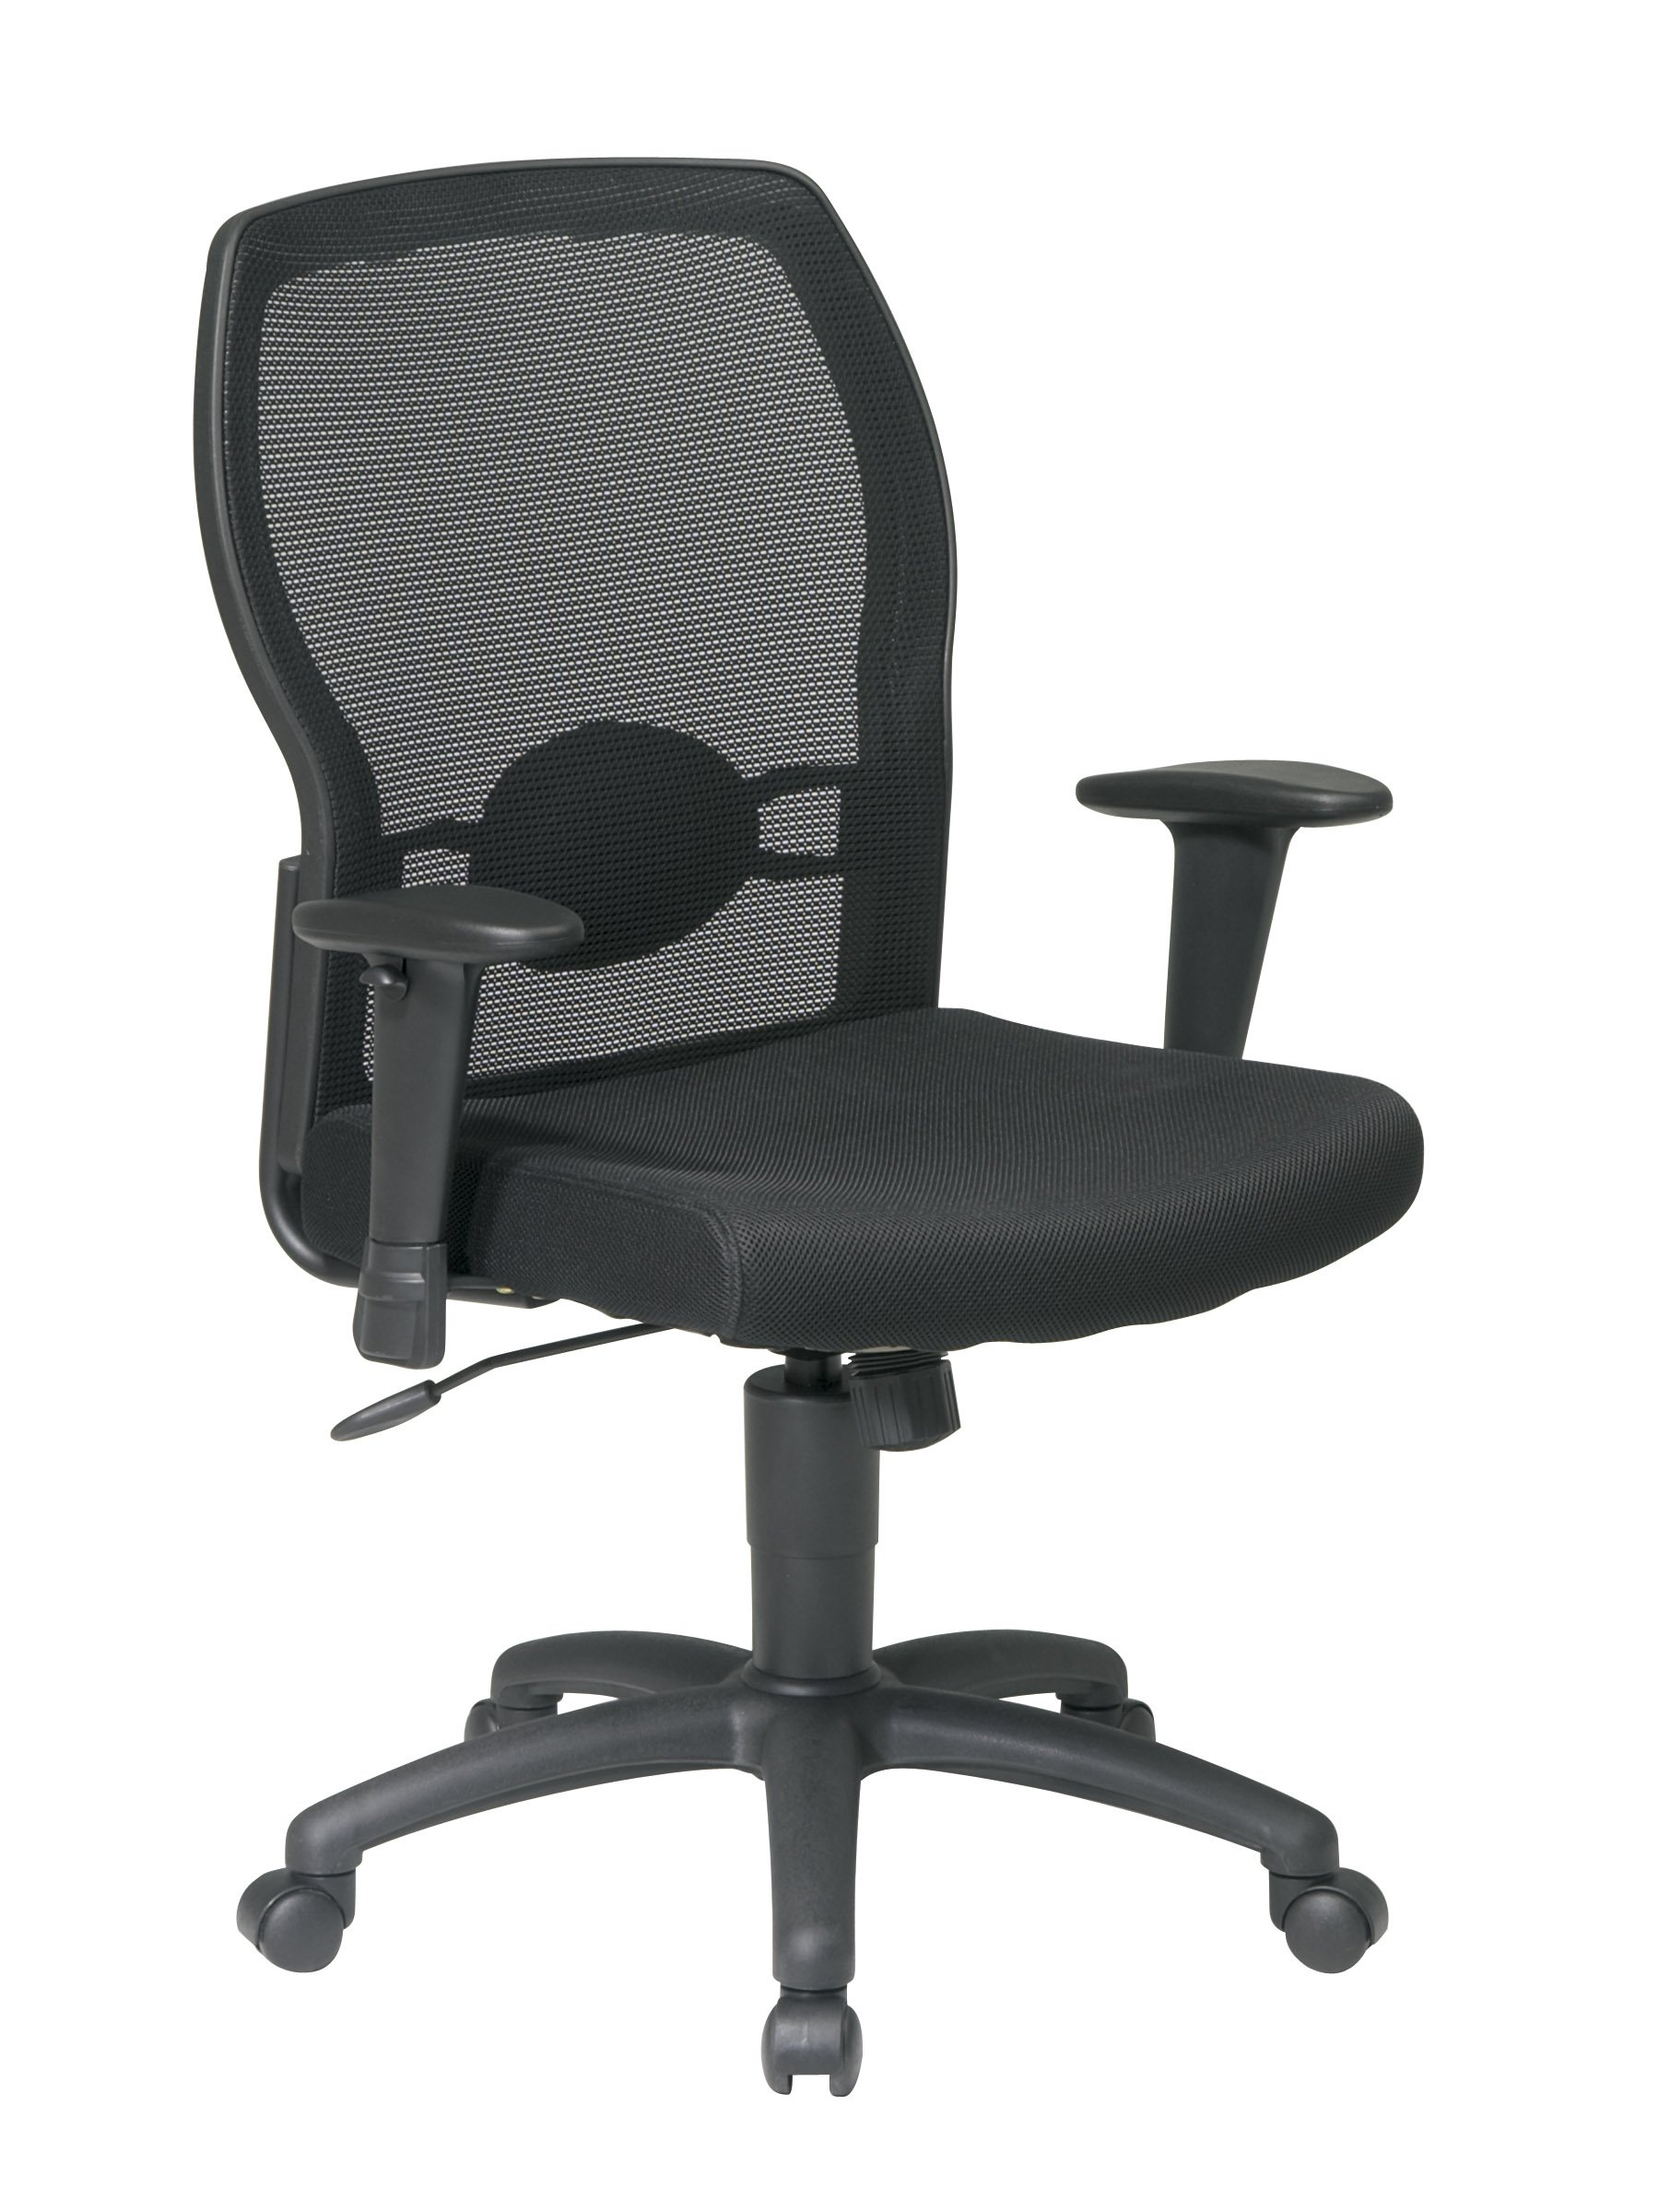 Office Star Breathable Woven Mesh Back and Padded Mesh Seat, Adjustable Arms and Lumbar Support, Nylon Base Adjustable Managers Chair, Black